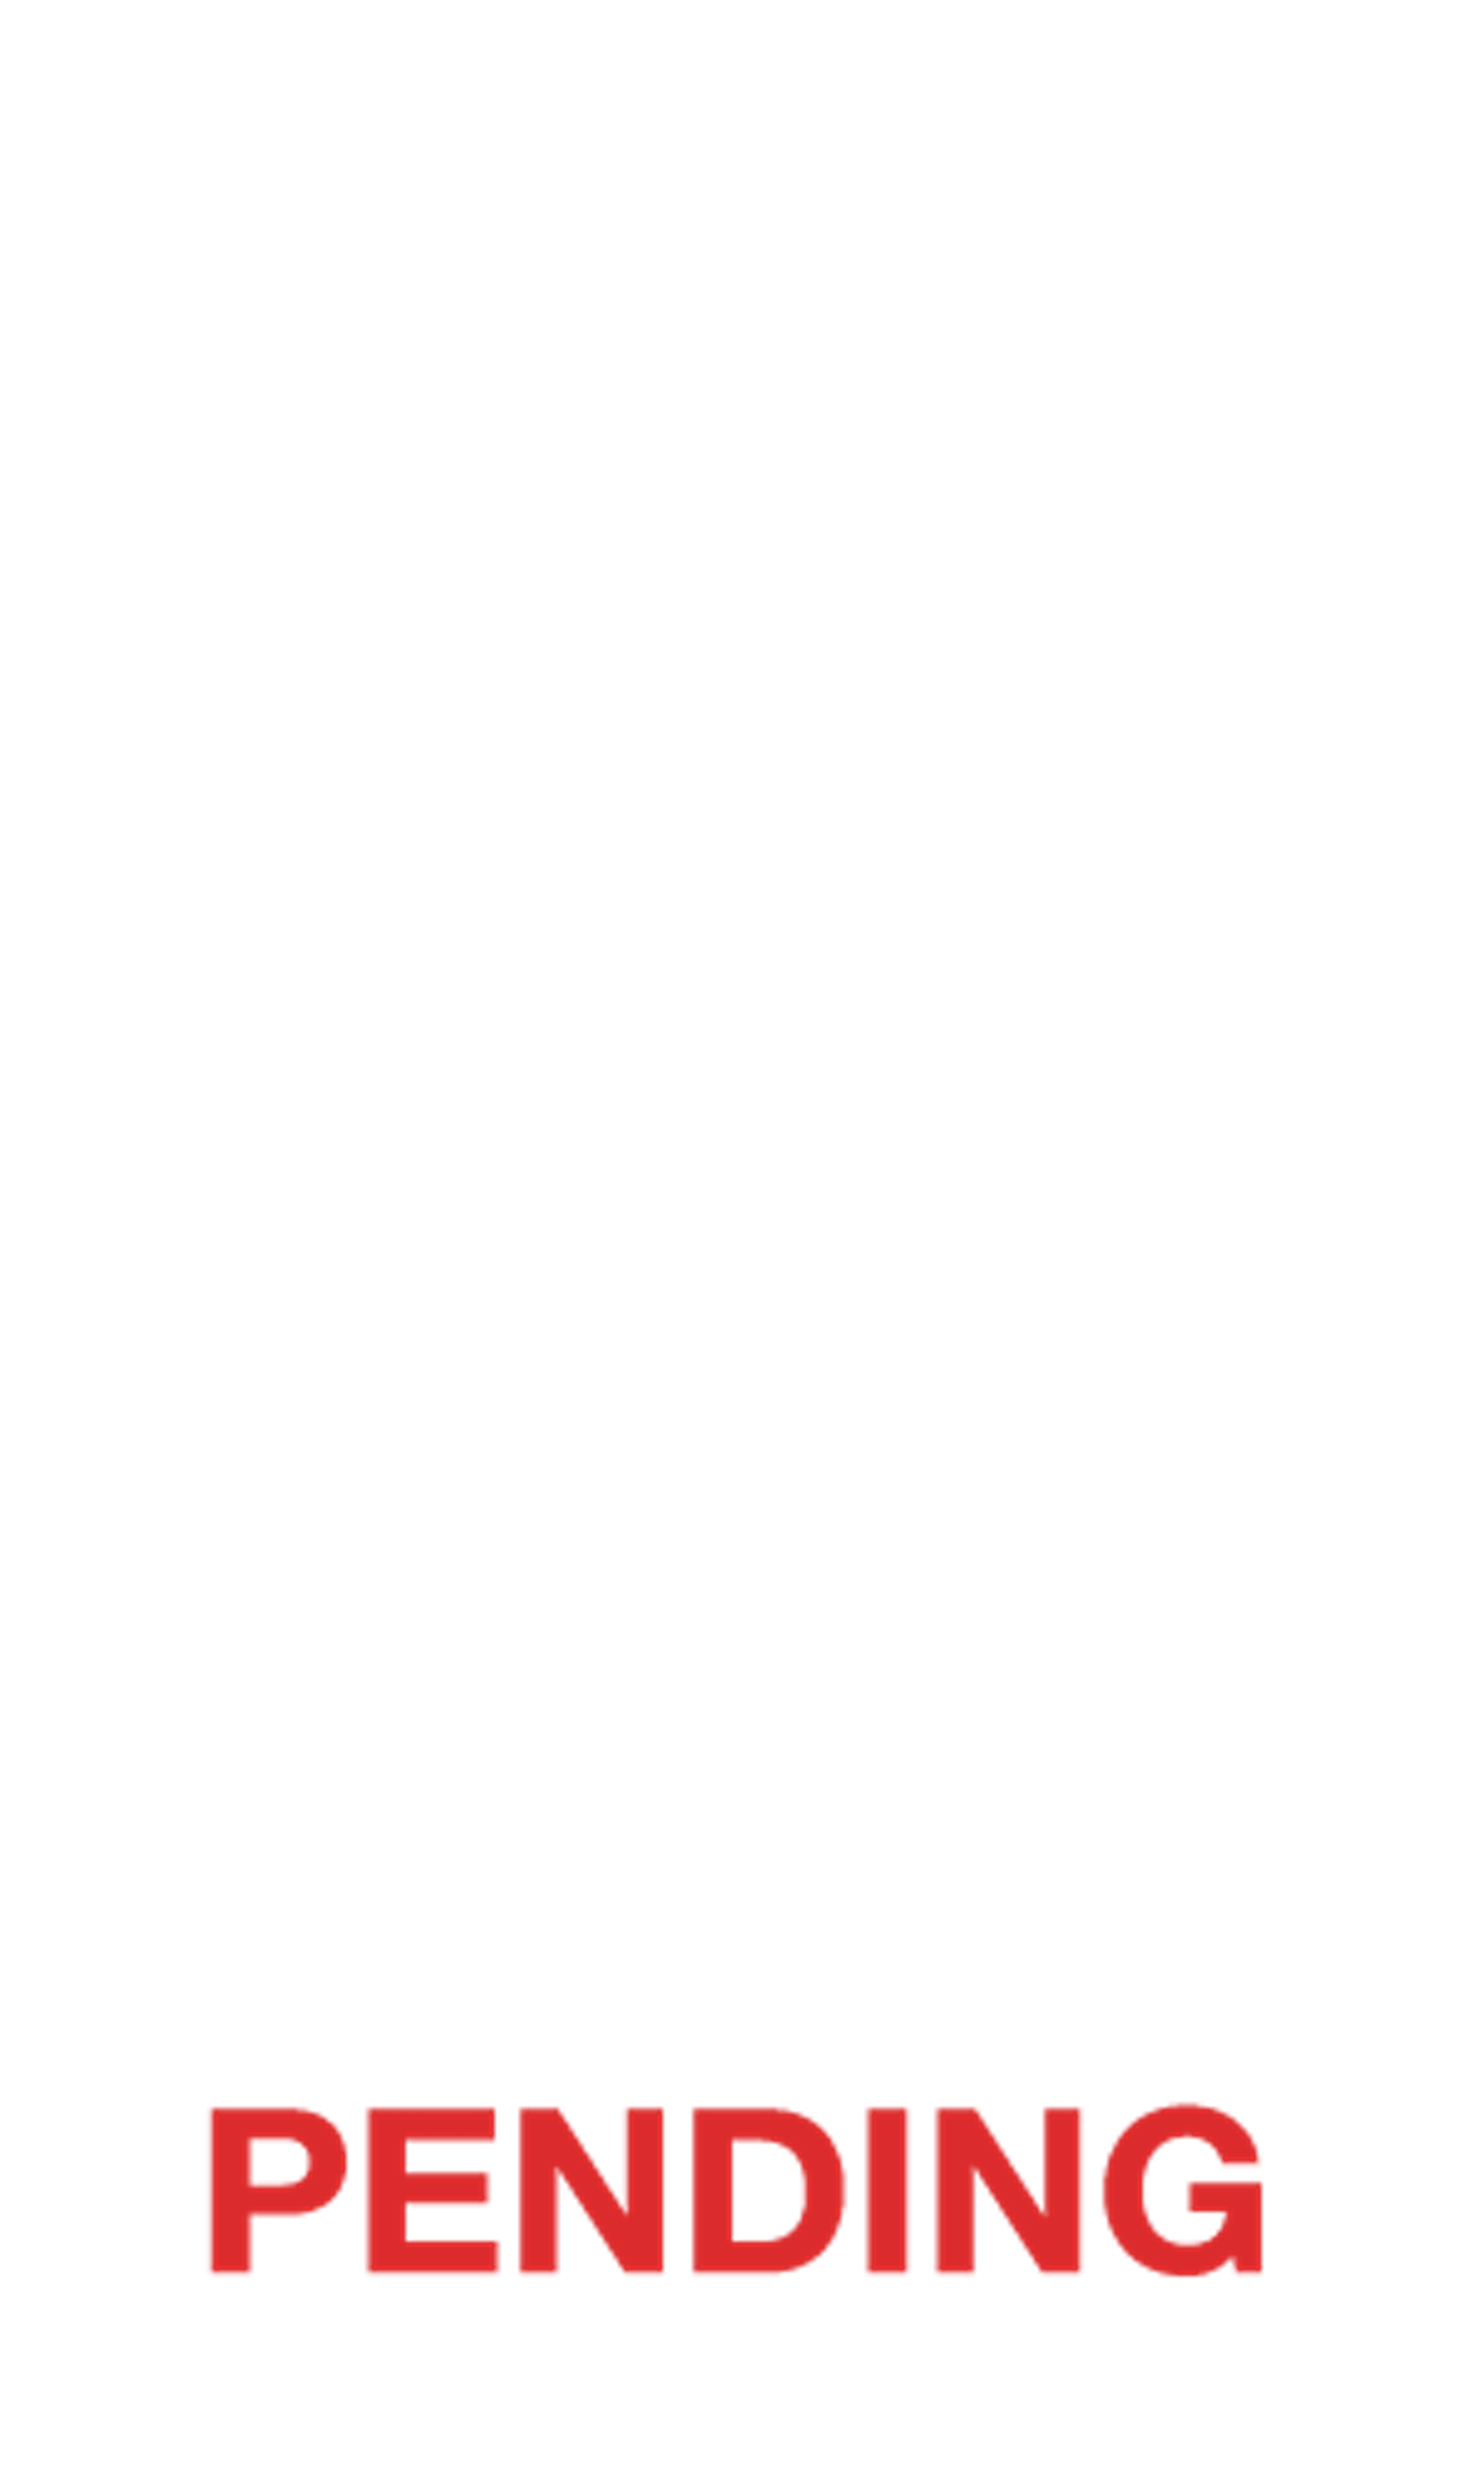 Certified B Corporation PENDING White SM